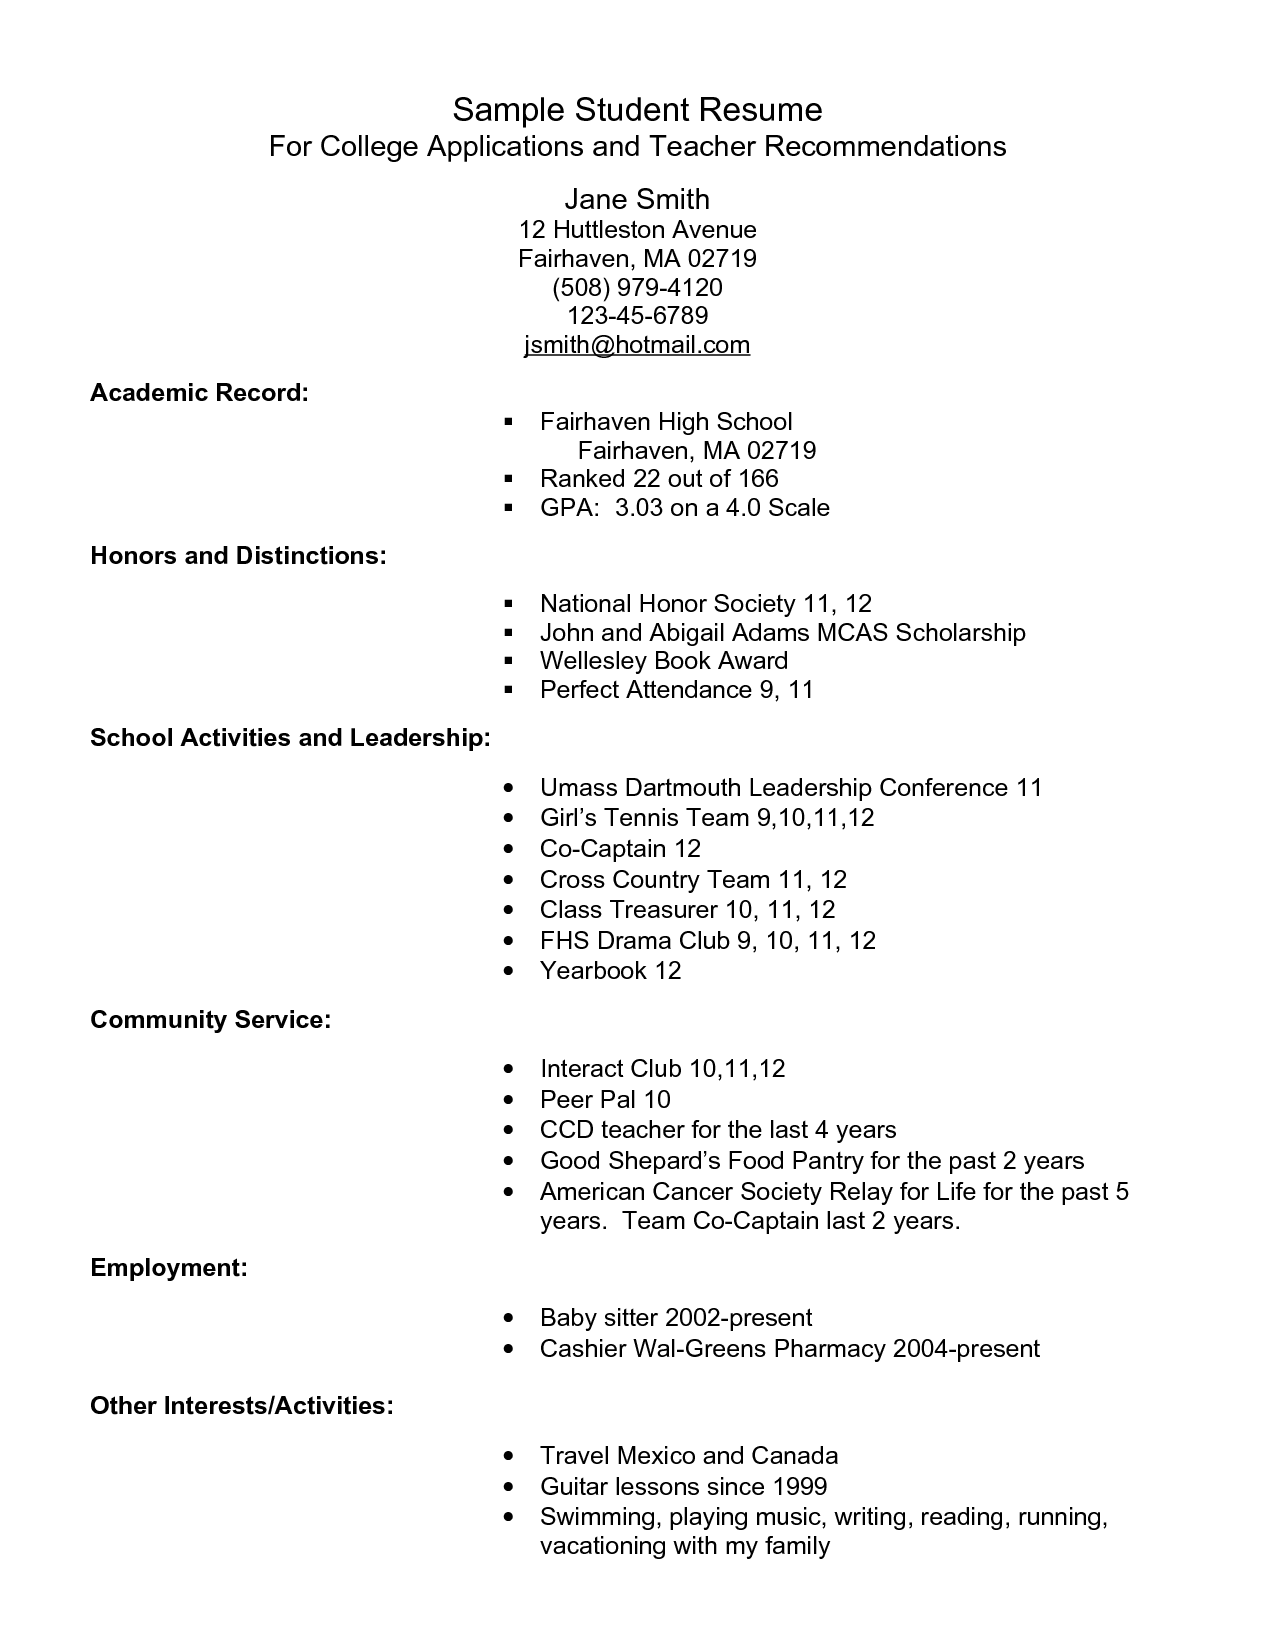 example resume for high school students for college applications sample student resume pdf by smapdi59 - How To Write A Job Resume For A Highschool Student